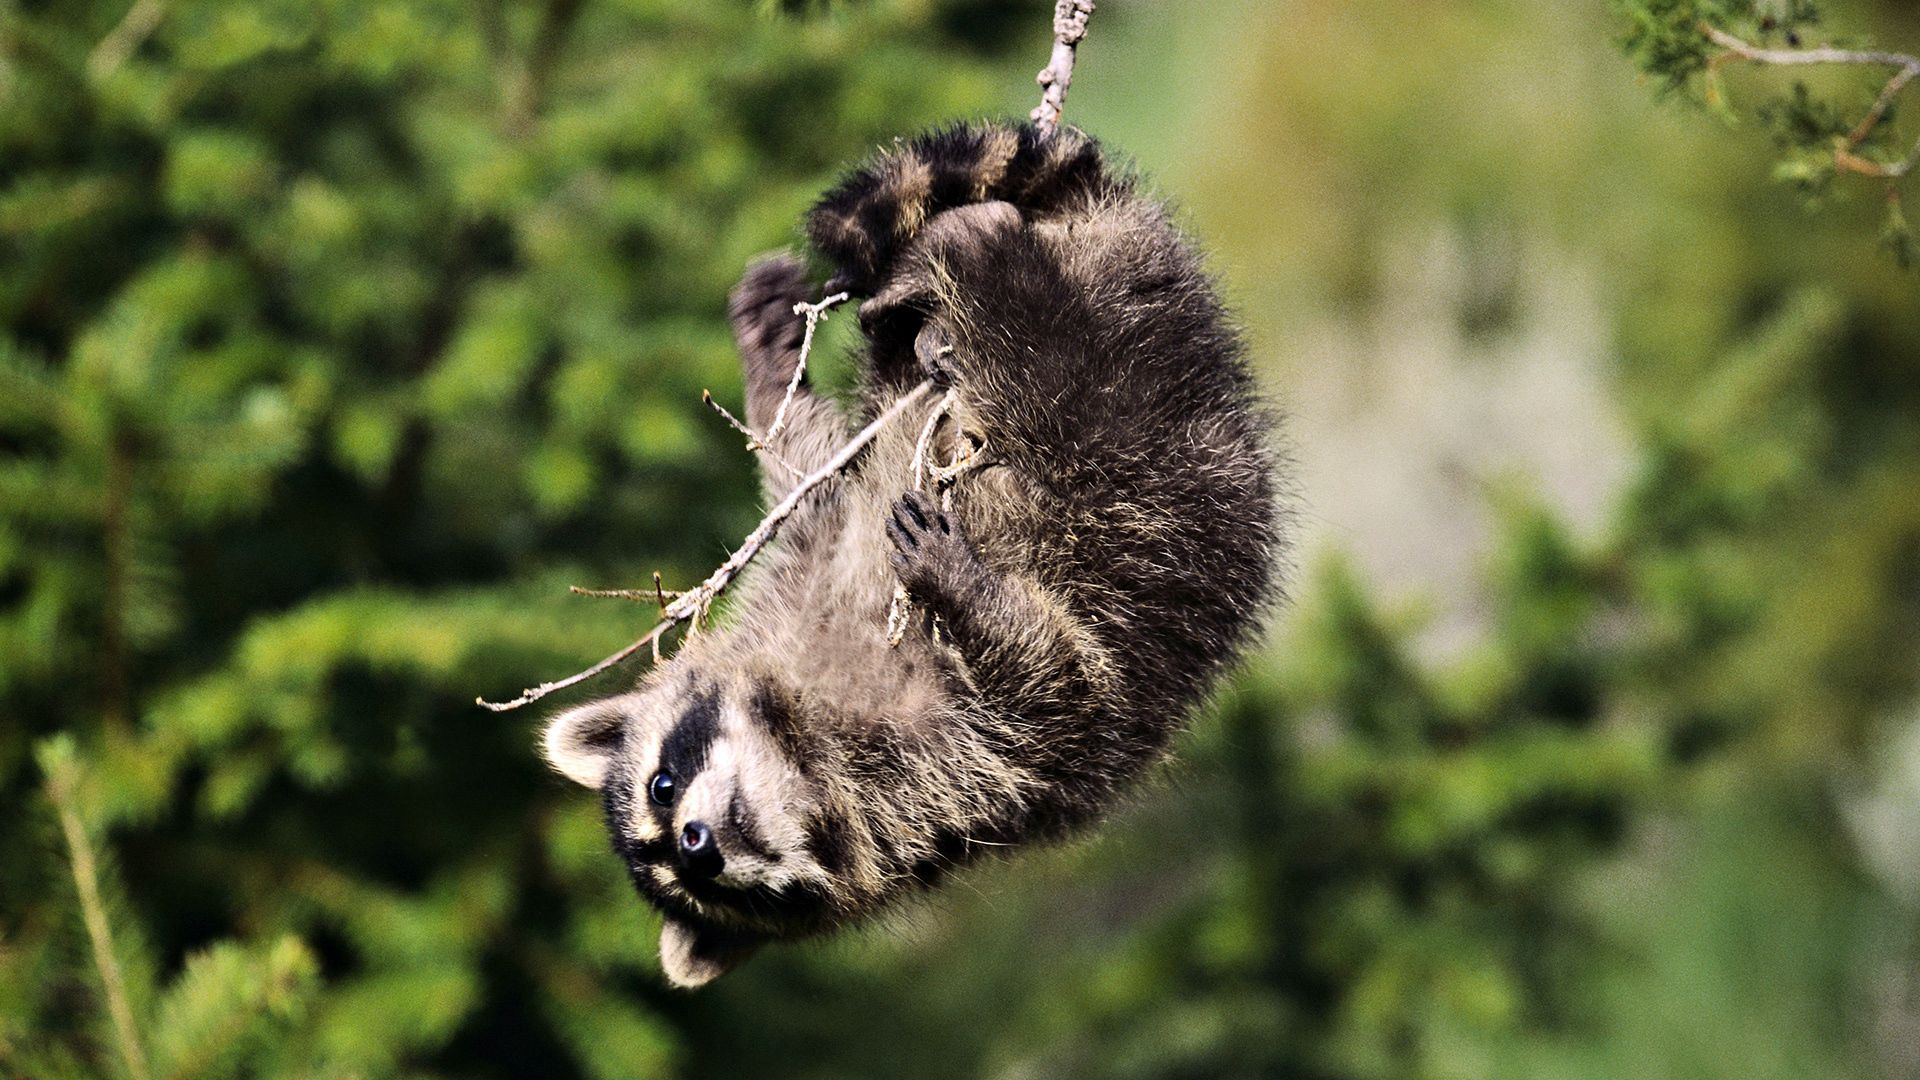 156153 Screensavers and Wallpapers Raccoon for phone. Download Animals, Branches, Playful, Raccoon pictures for free